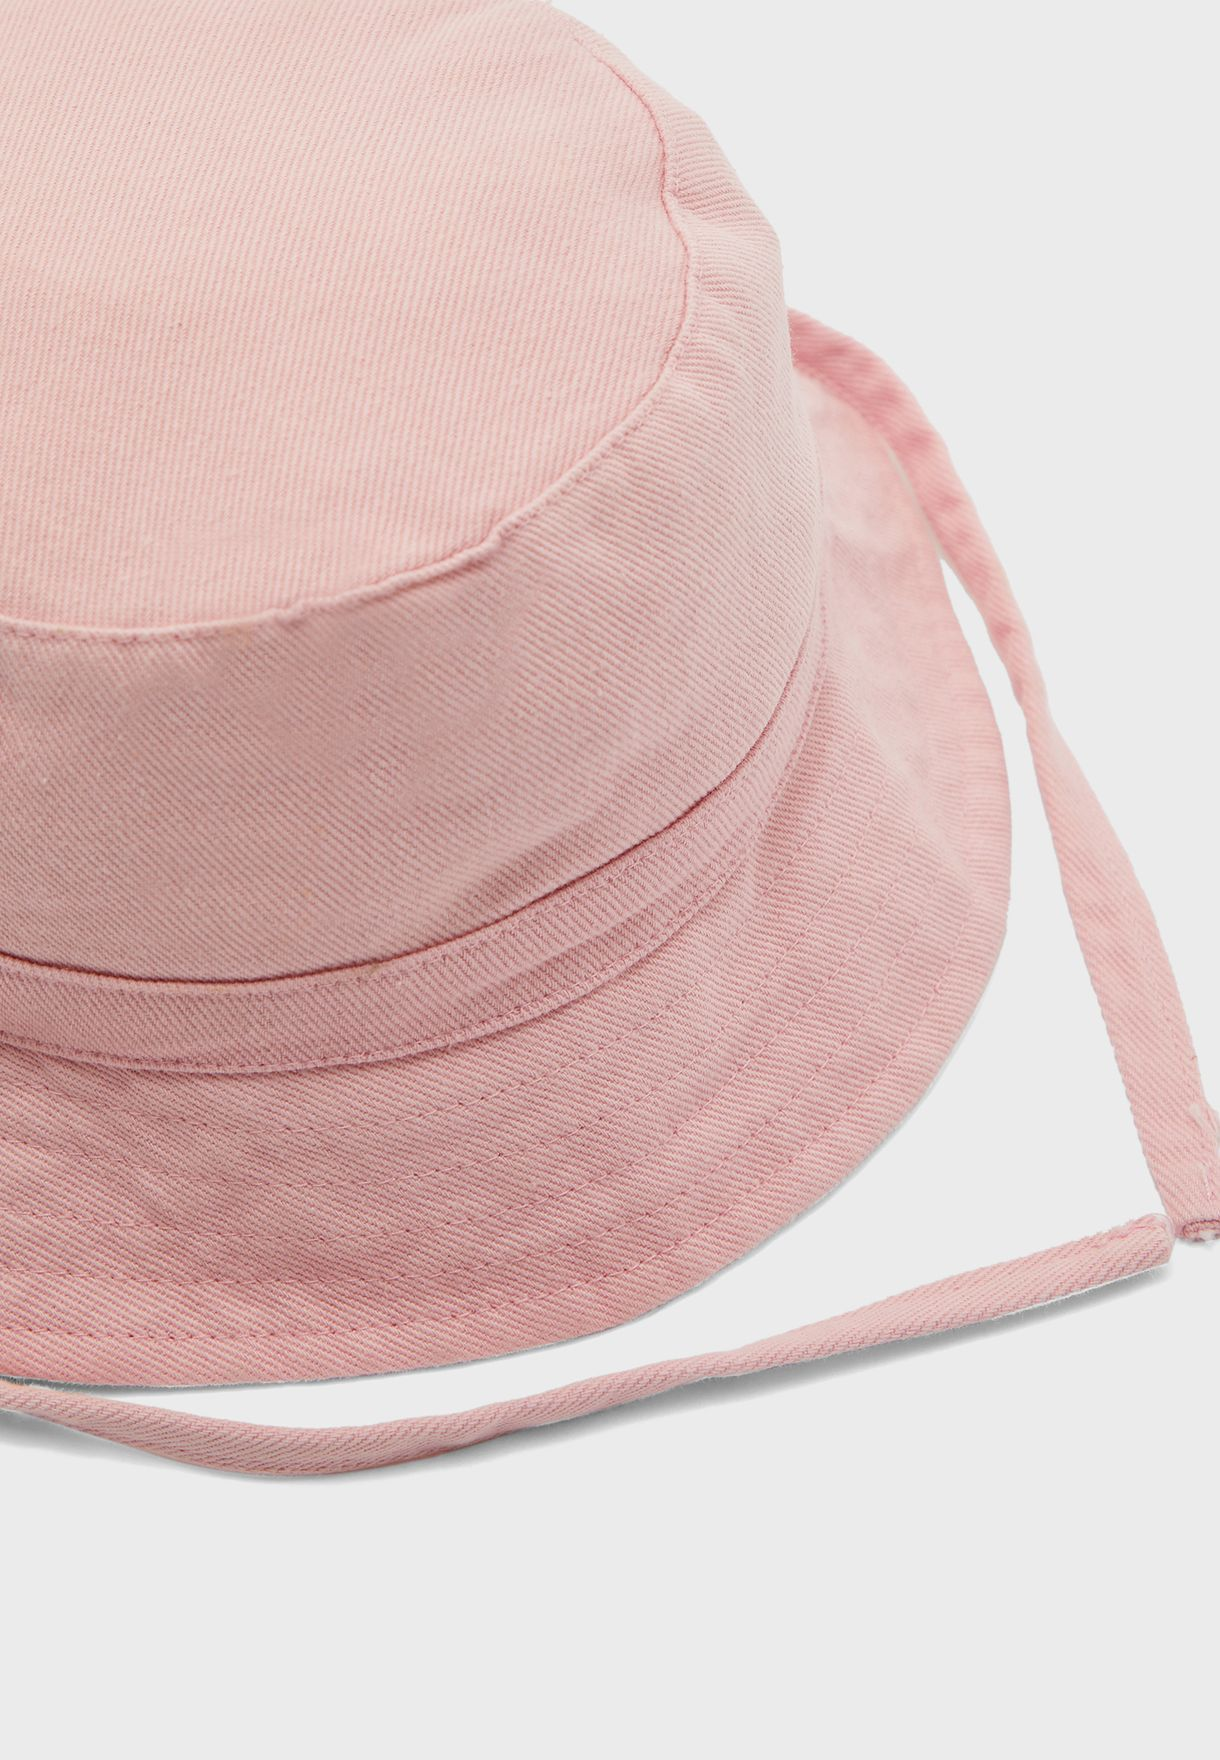 Kids Floral Reversible Bucket Hat